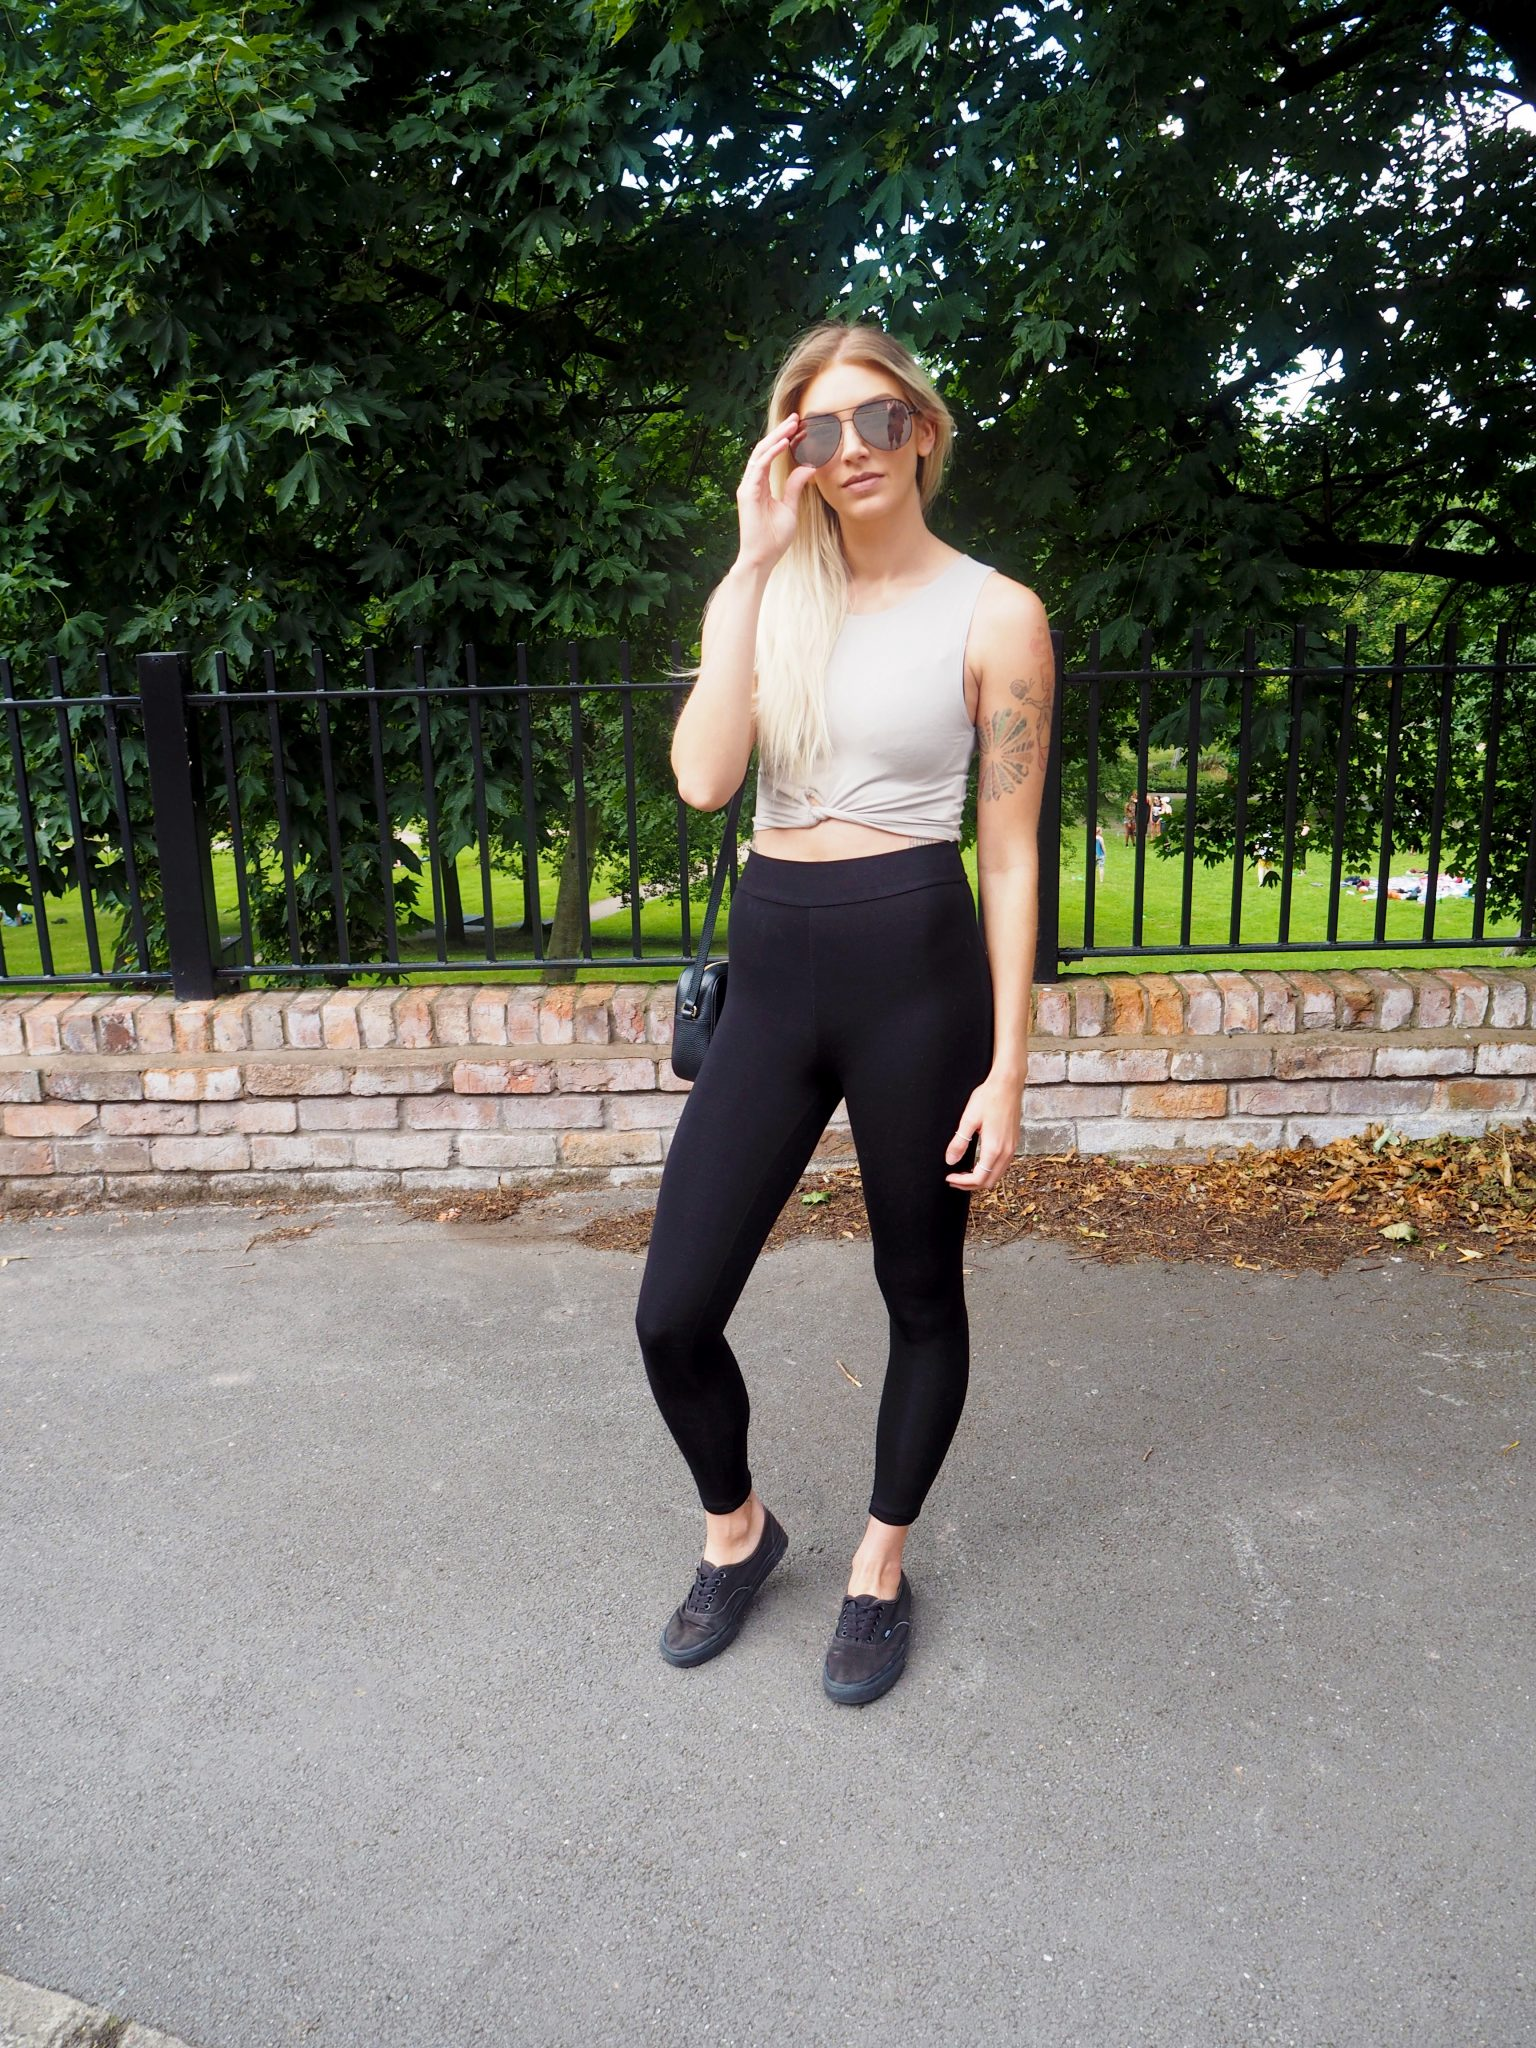 Laura Kate Lucas - Manchester Fashion, Fitness and Food Blogger | Casual Neutrals Outfit Post - Oh Polly Leggings and Crop Top